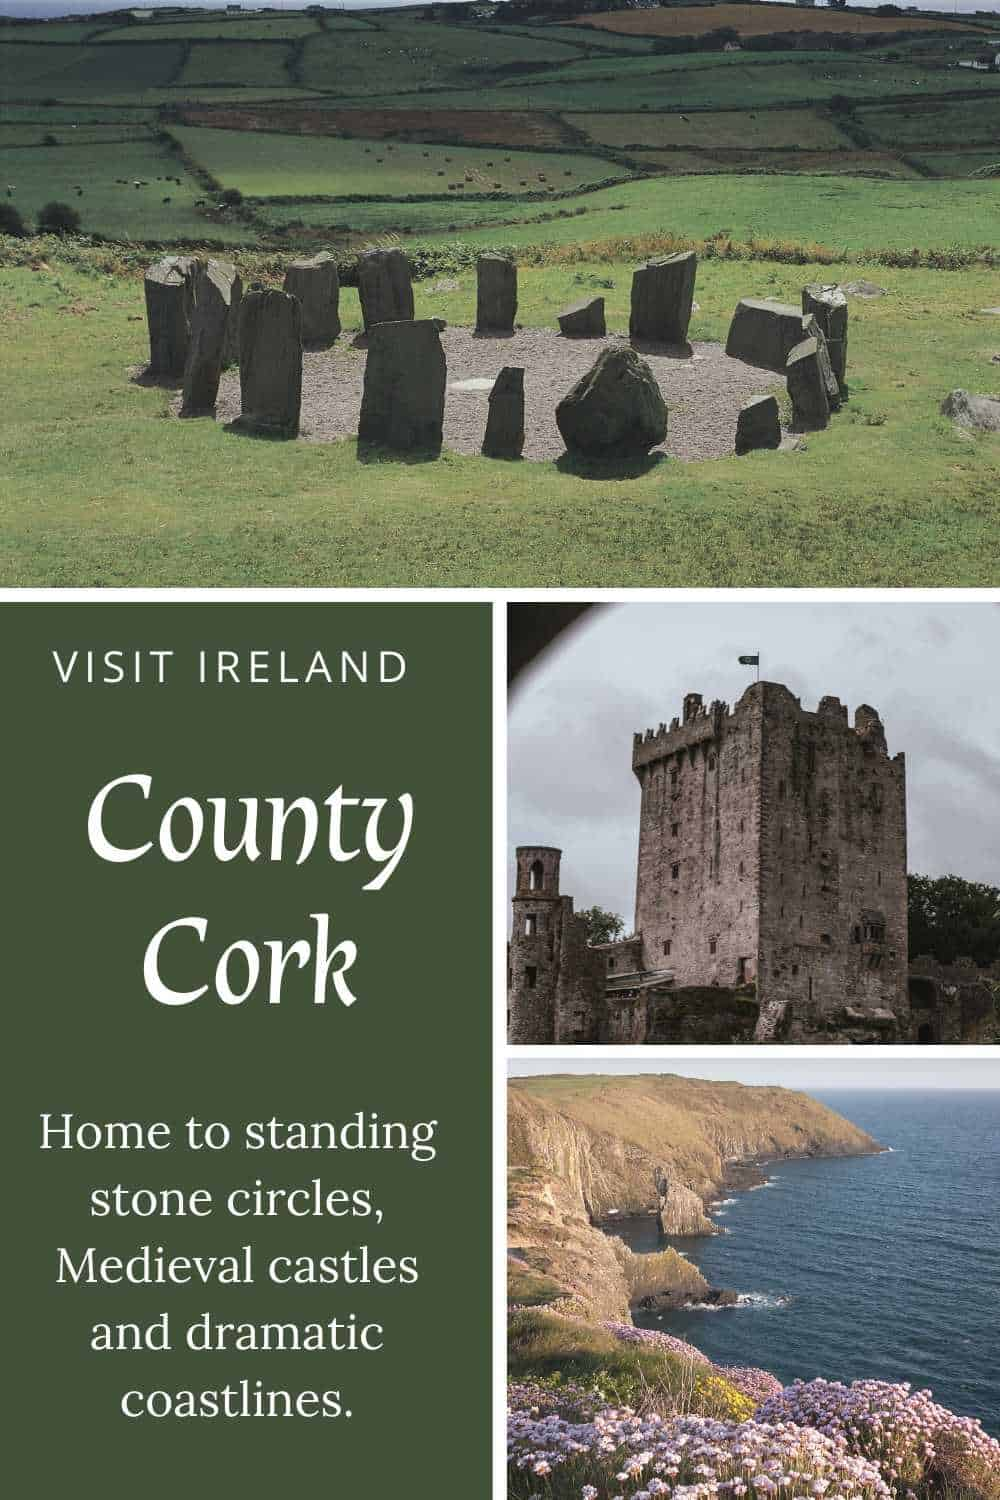 Photo collage showing Drombeg Stone Circle, Blarney Castle and the Old Head of Kinsale